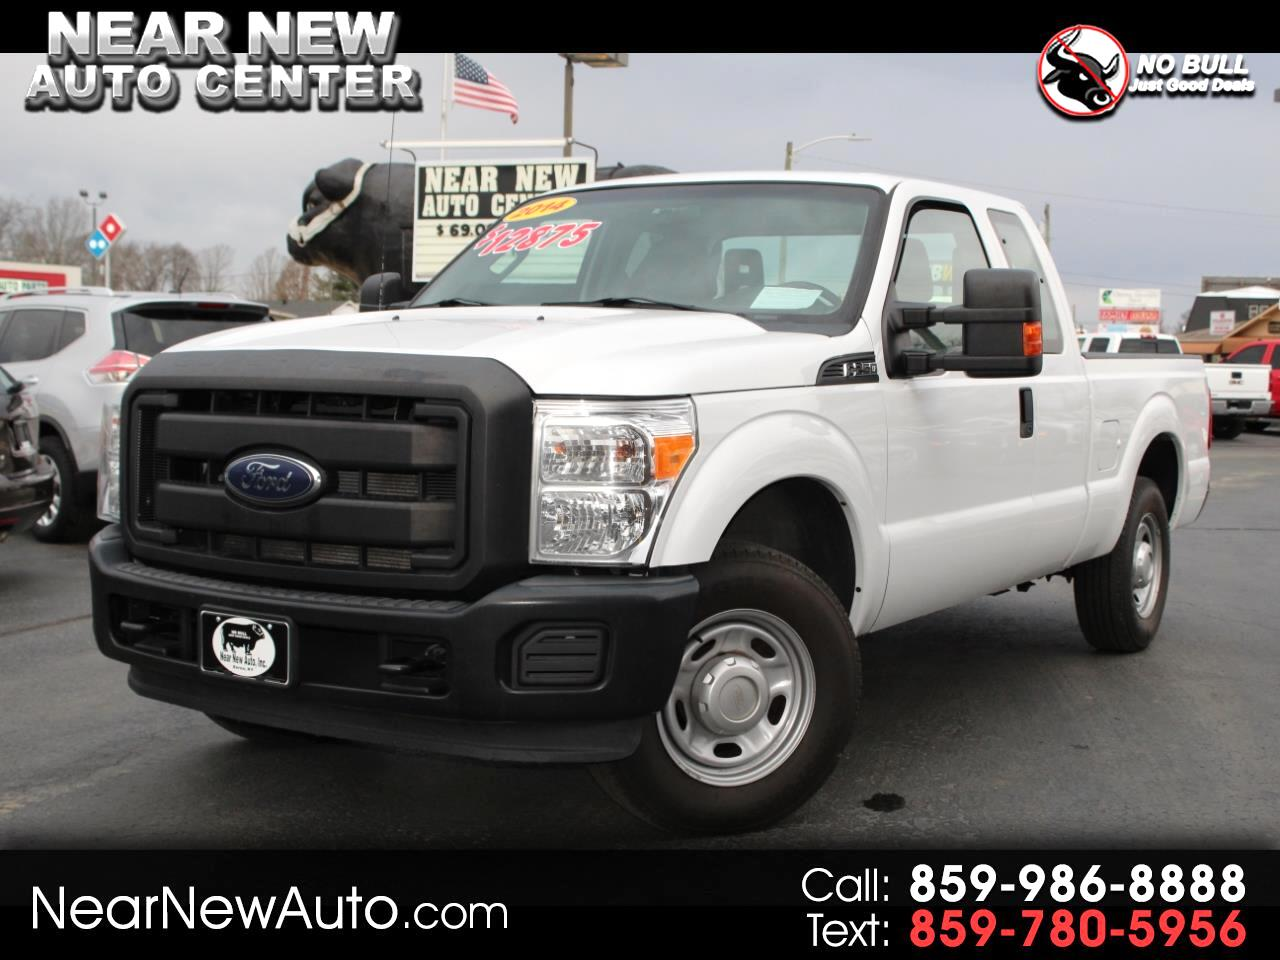 2014 Ford Super Duty F-250 SRW 2WD SuperCab 142